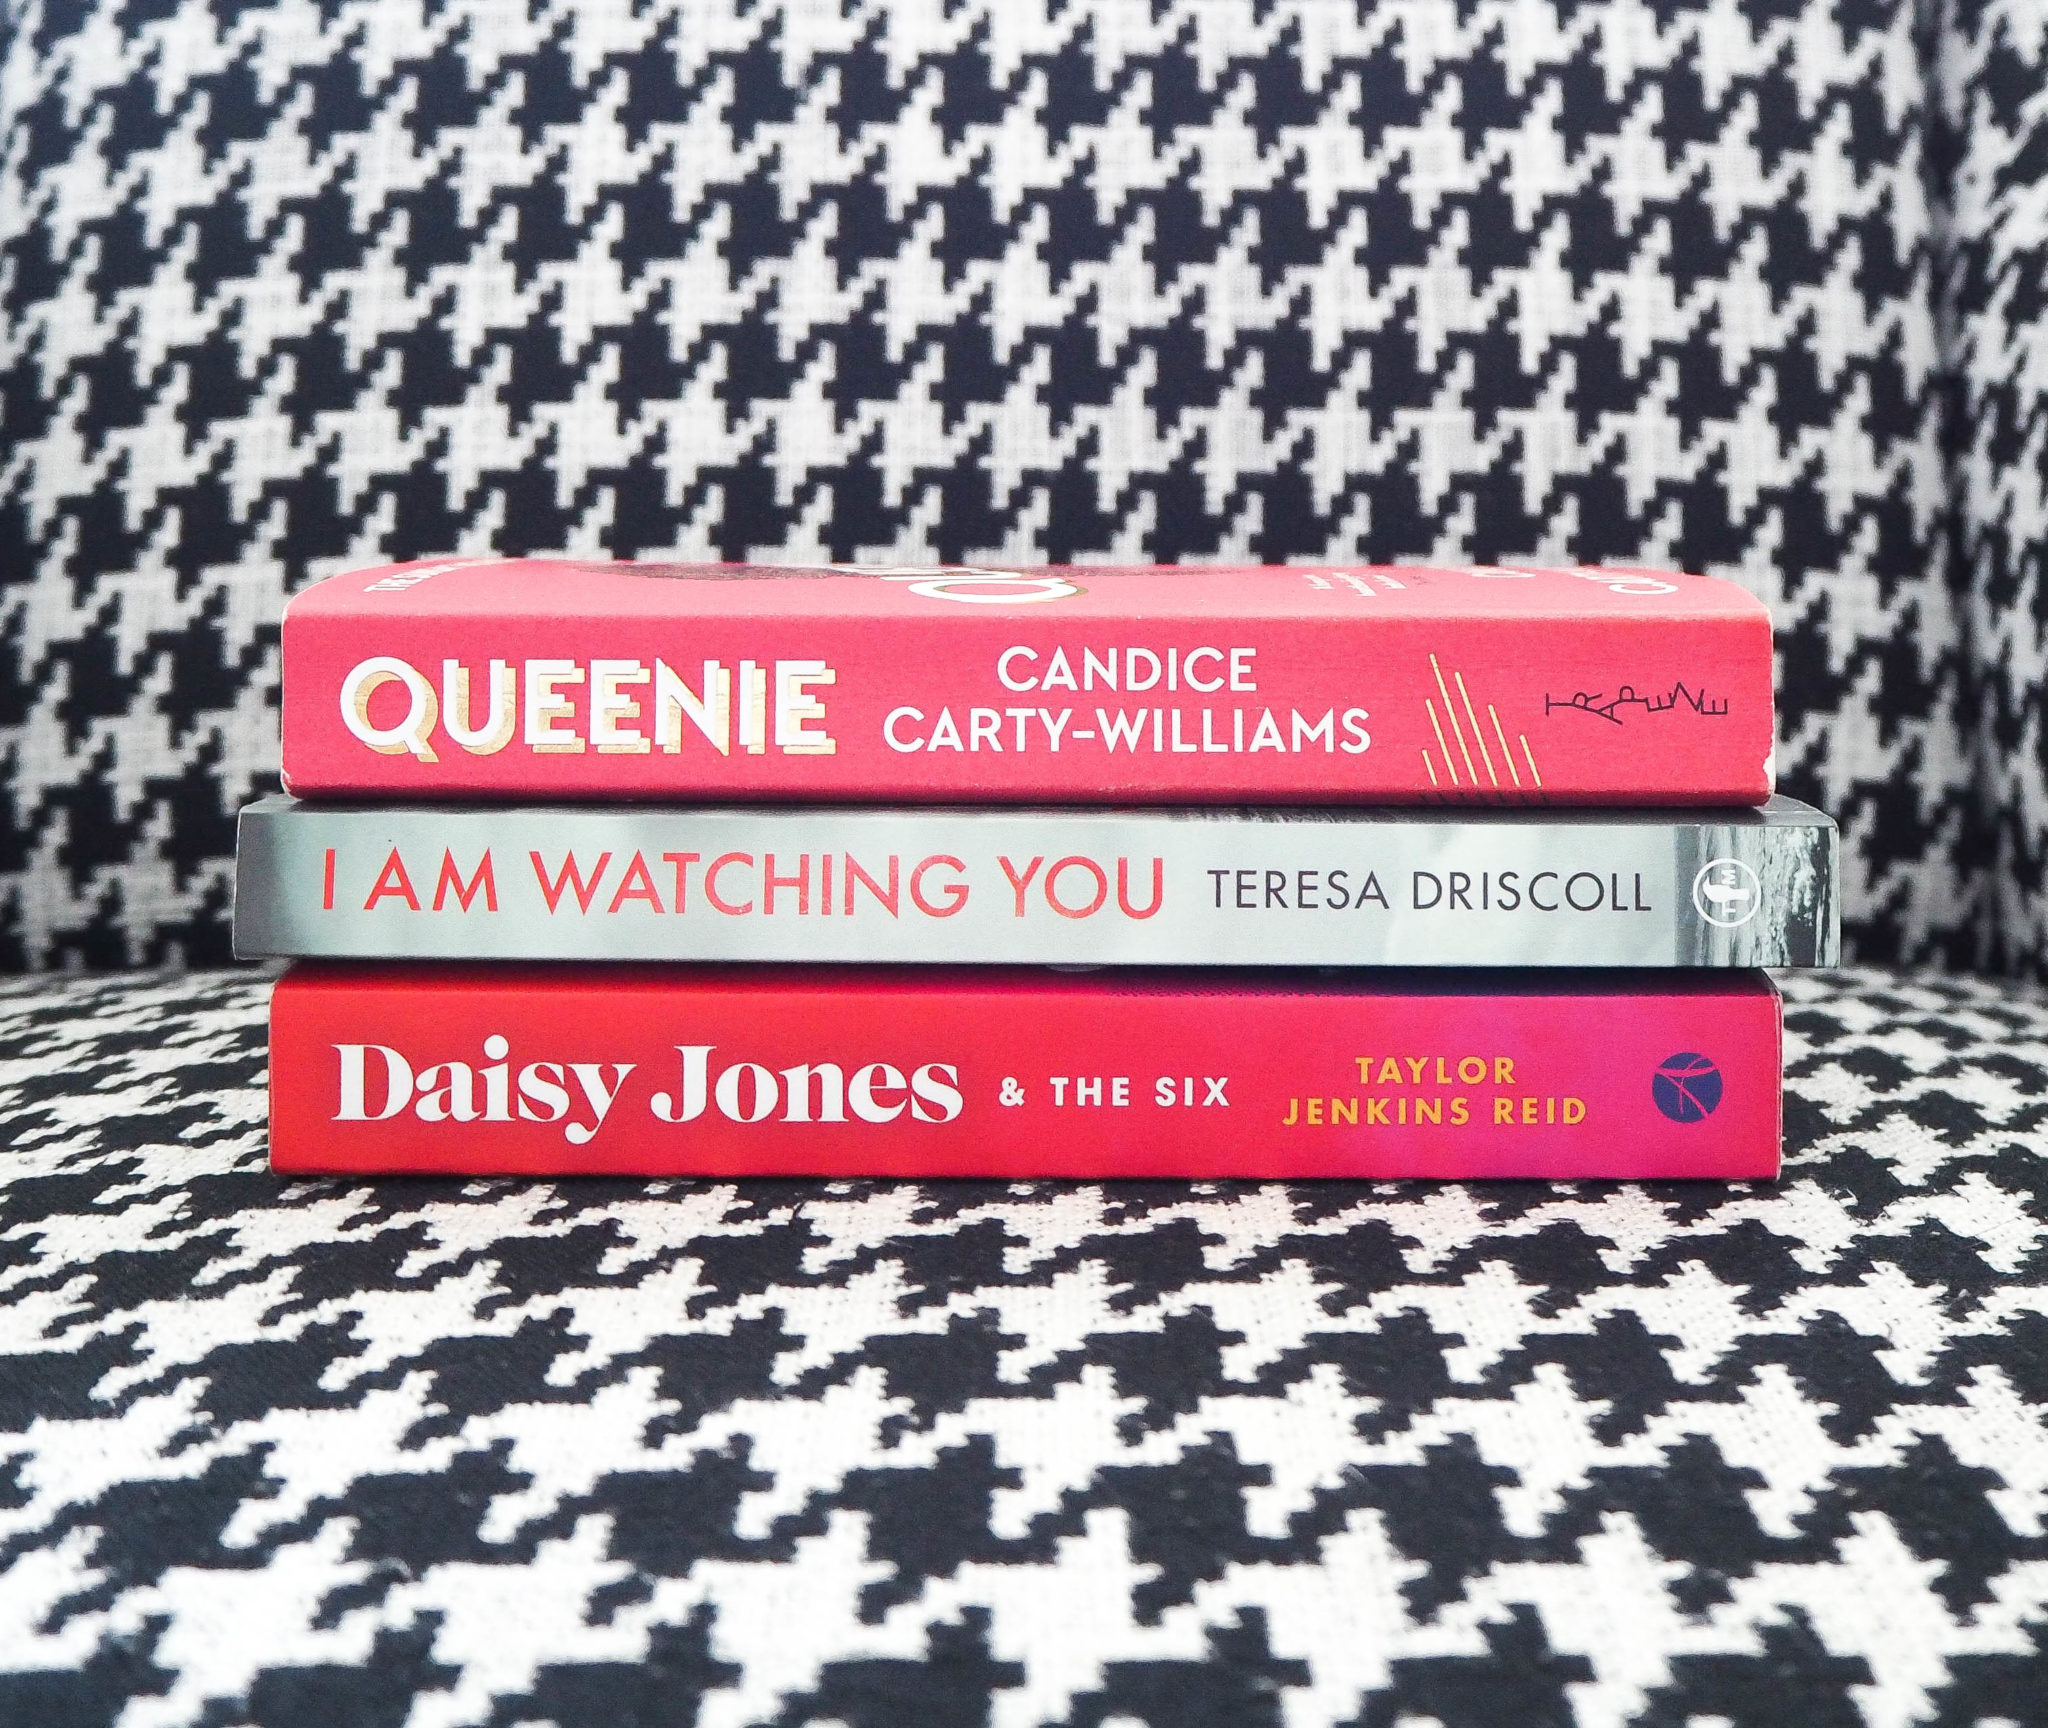 Queenie Candice Carty Williams I am watching you Teresa Driscoll Daisy Comes & The Six Taylor Jenkins Reid Isolation bookclub